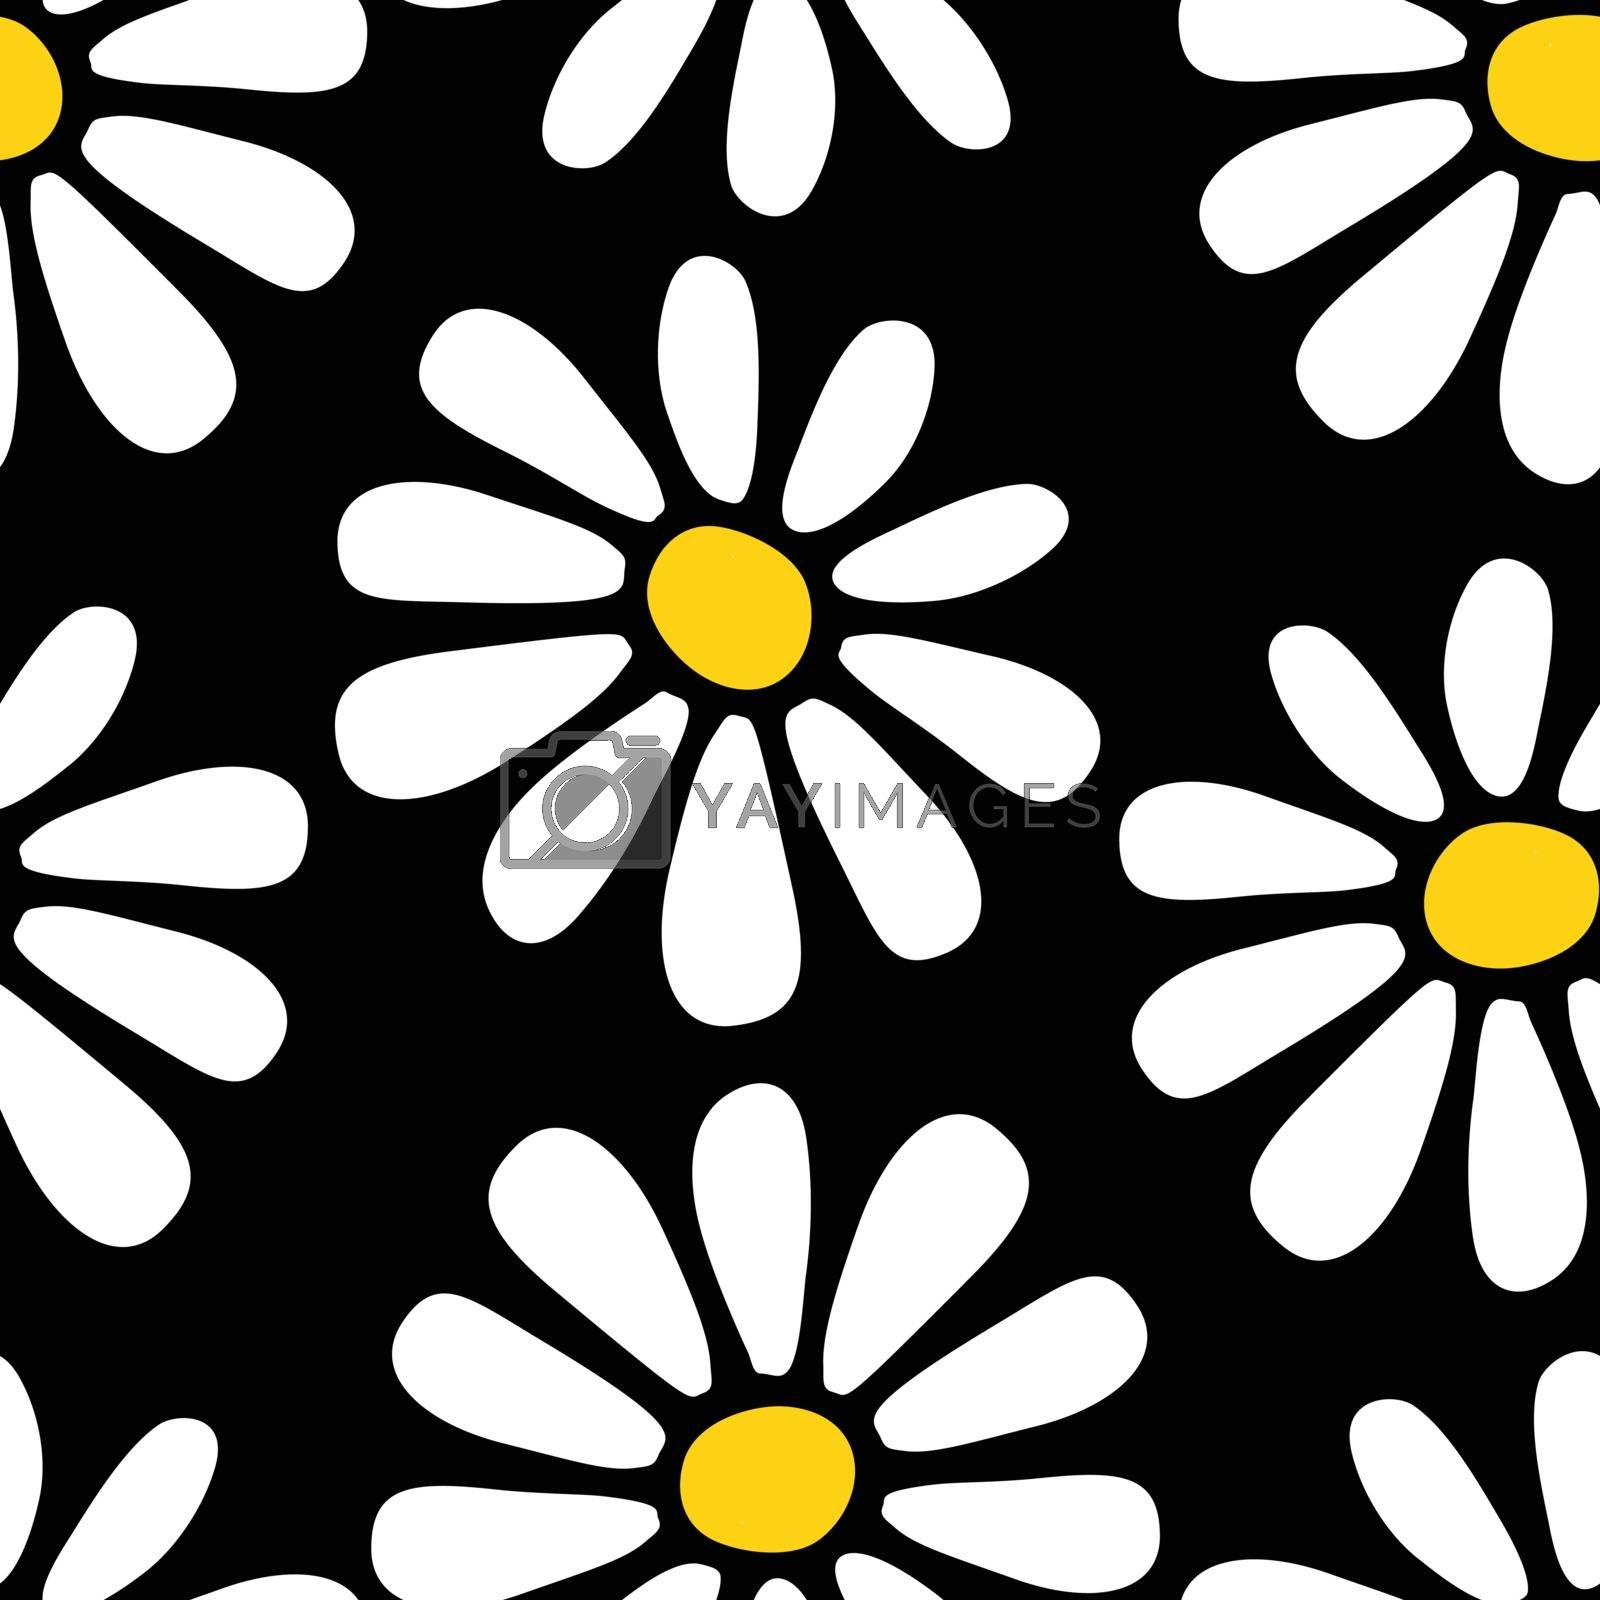 Decorative seamless floral pattern with hand drawn white yellow daisy flowers on black background. Retro style flat design for fabric textile, wallpaper, wrapping paper, package, covers. Vector EPS10.